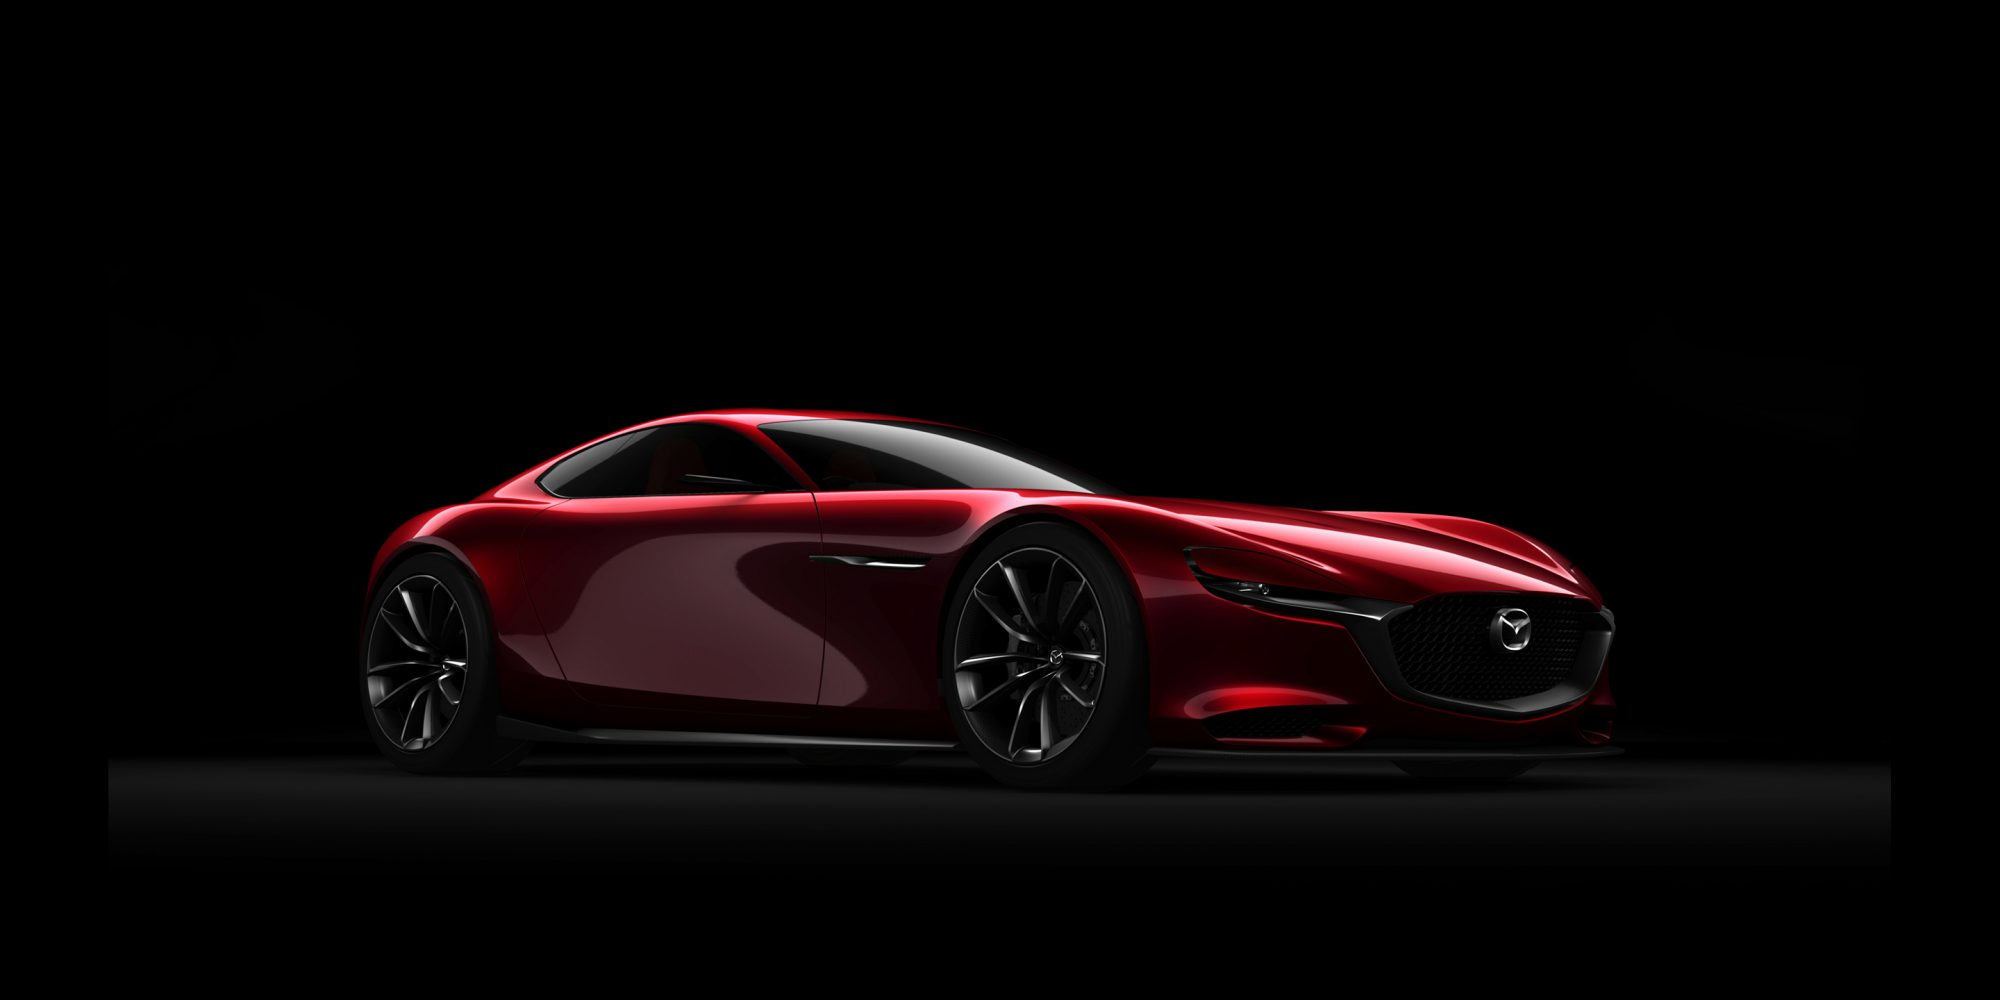 [Slika: what-do-you-think-of-the-mazda-rx-vision...0x1000.jpg]